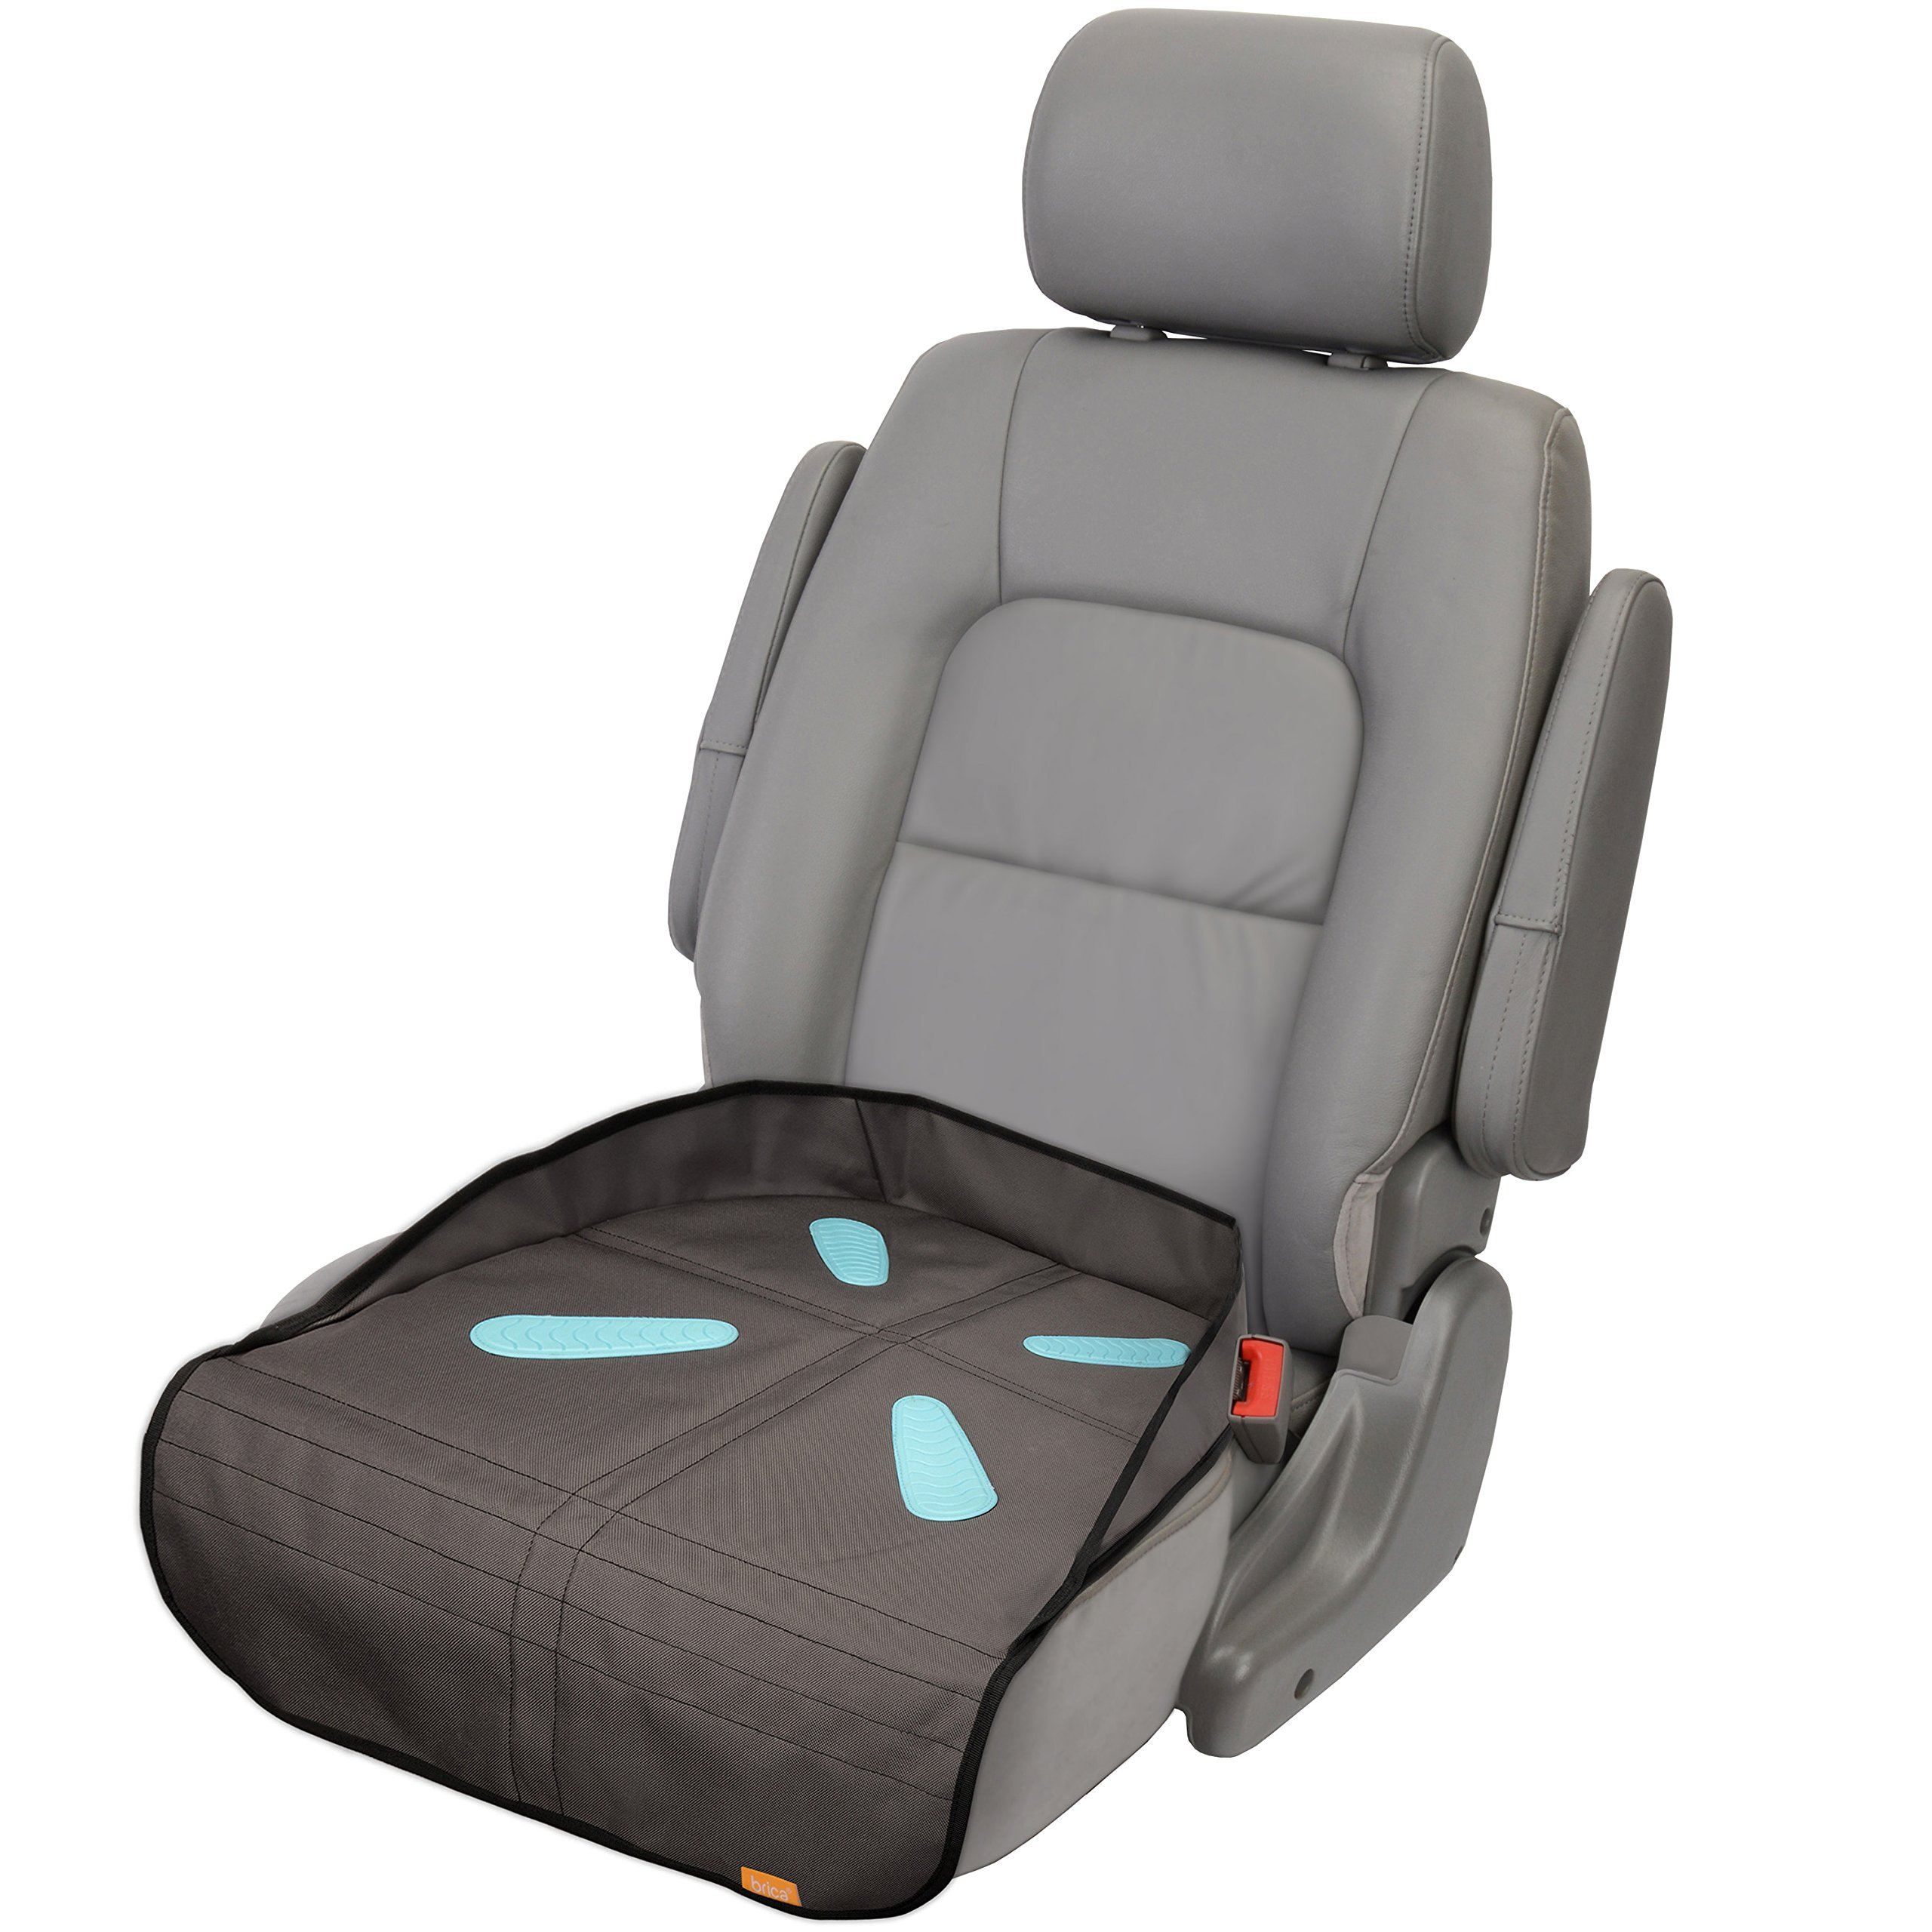 Amazon.com: Brica Seat Guardian Car Seat Protector: Baby